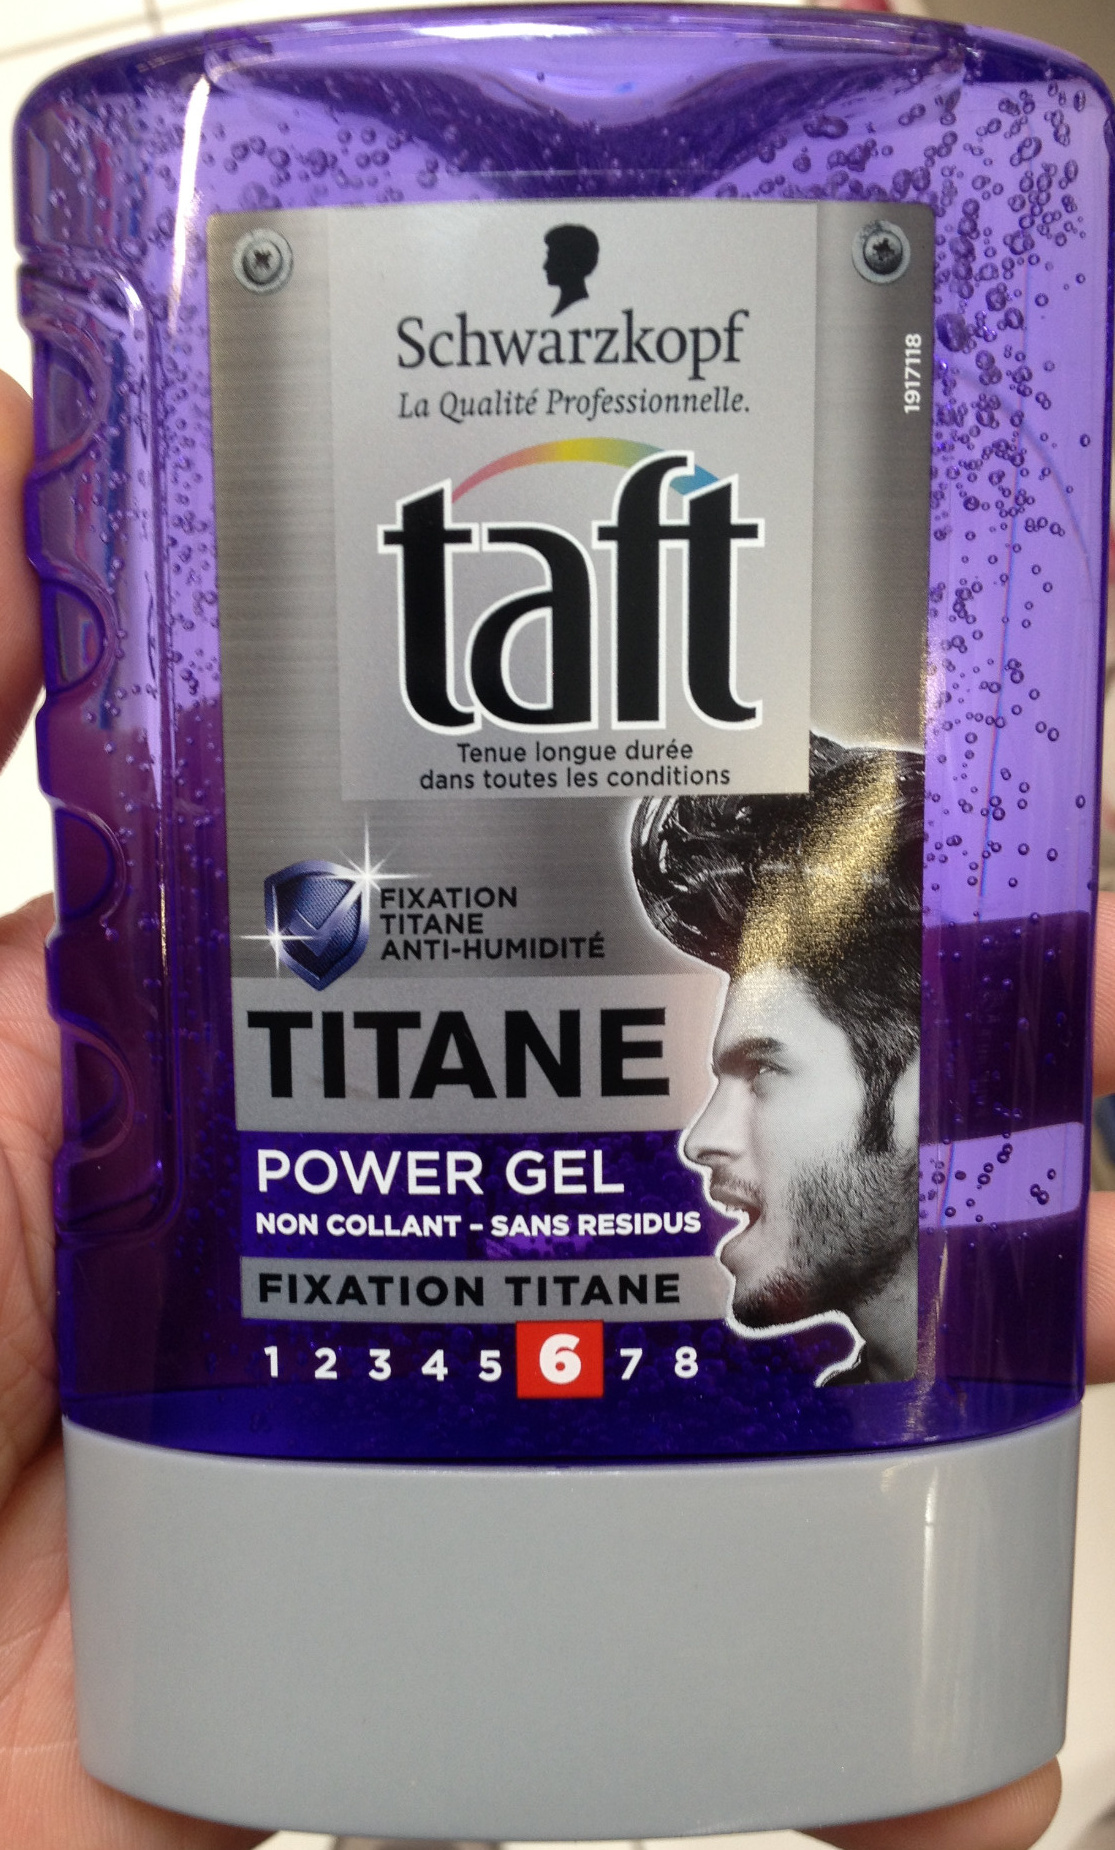 Titane Power gel - Product